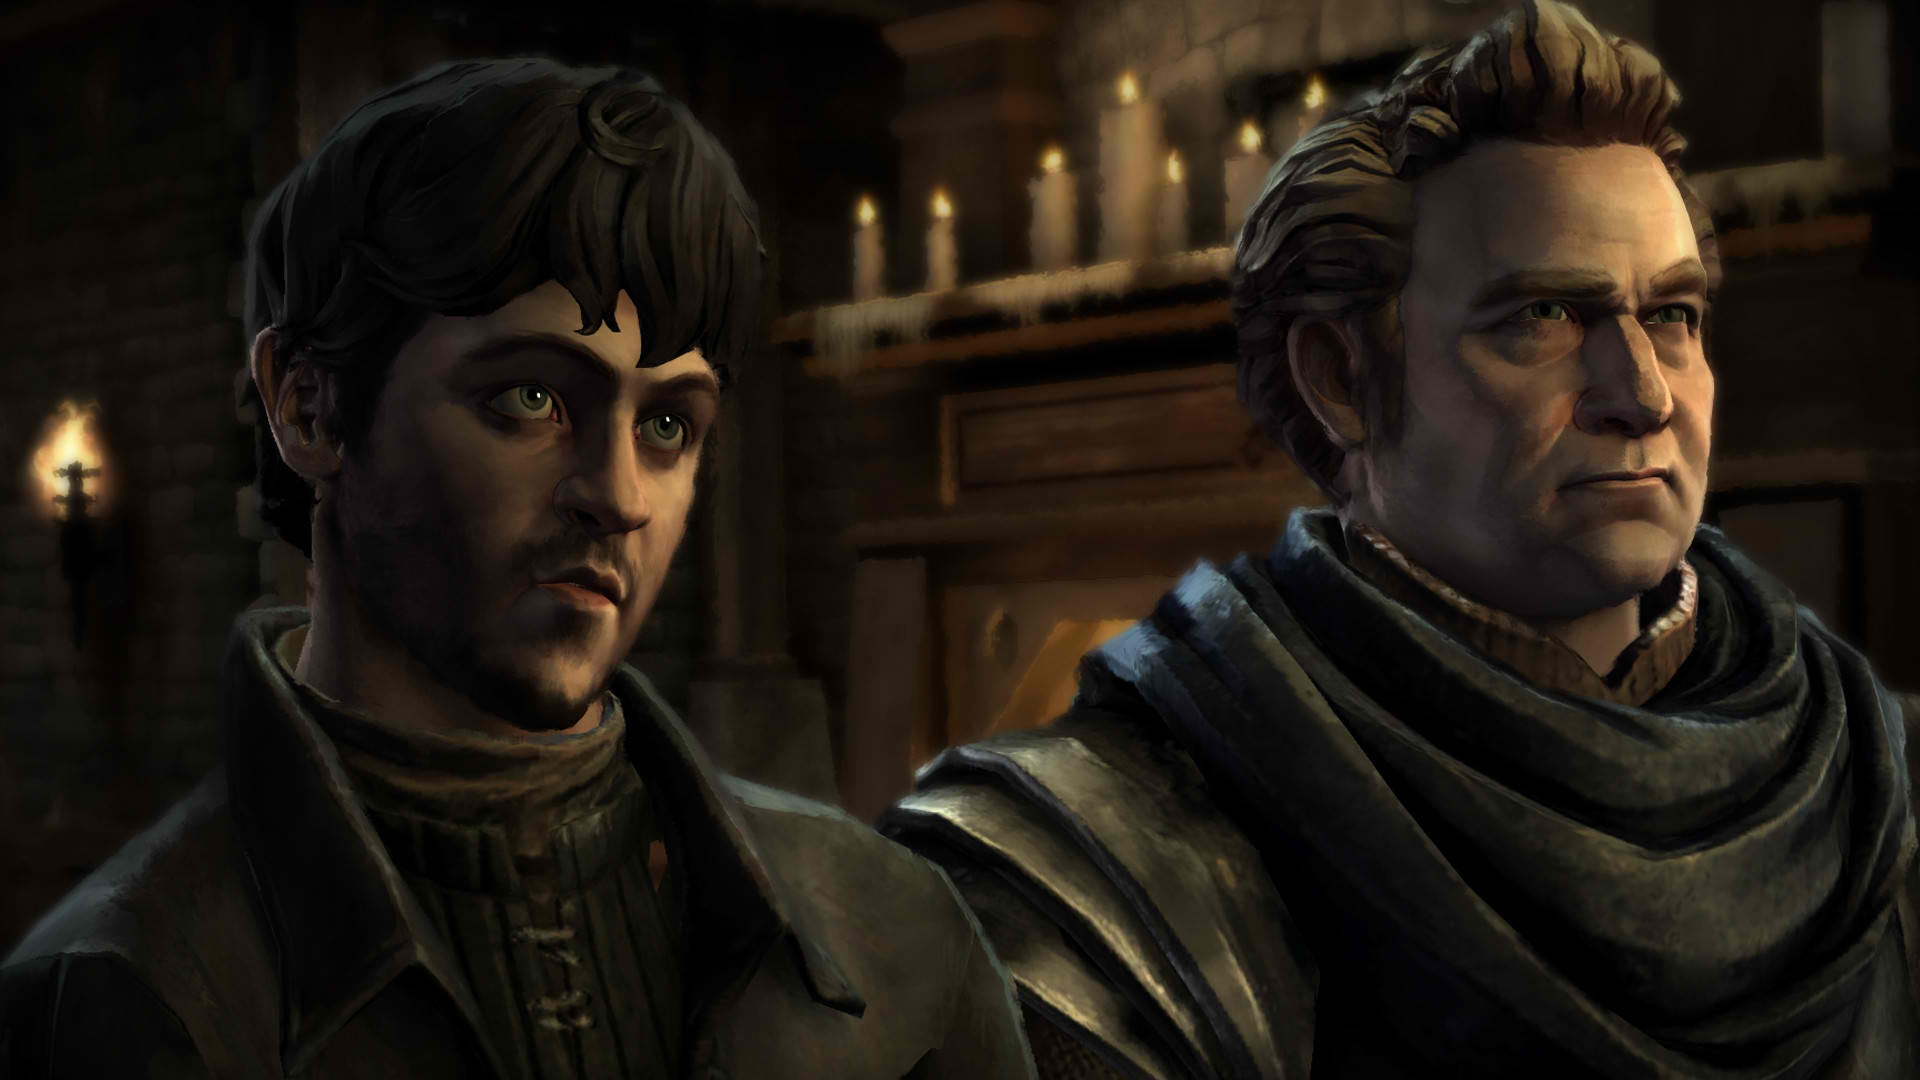 [Bytextest]Telltale Game of Thrones